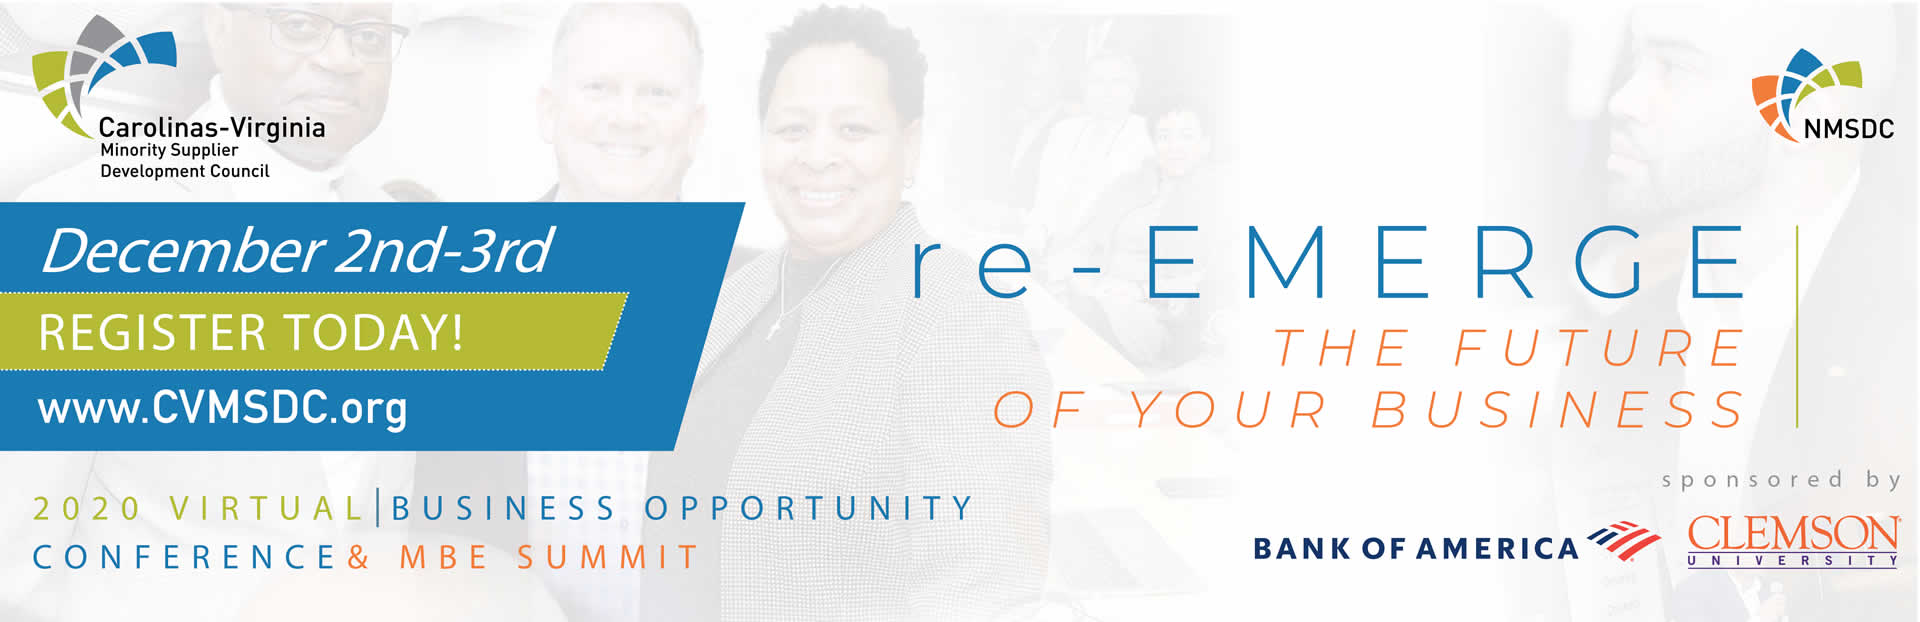 re-EMERGE Conference